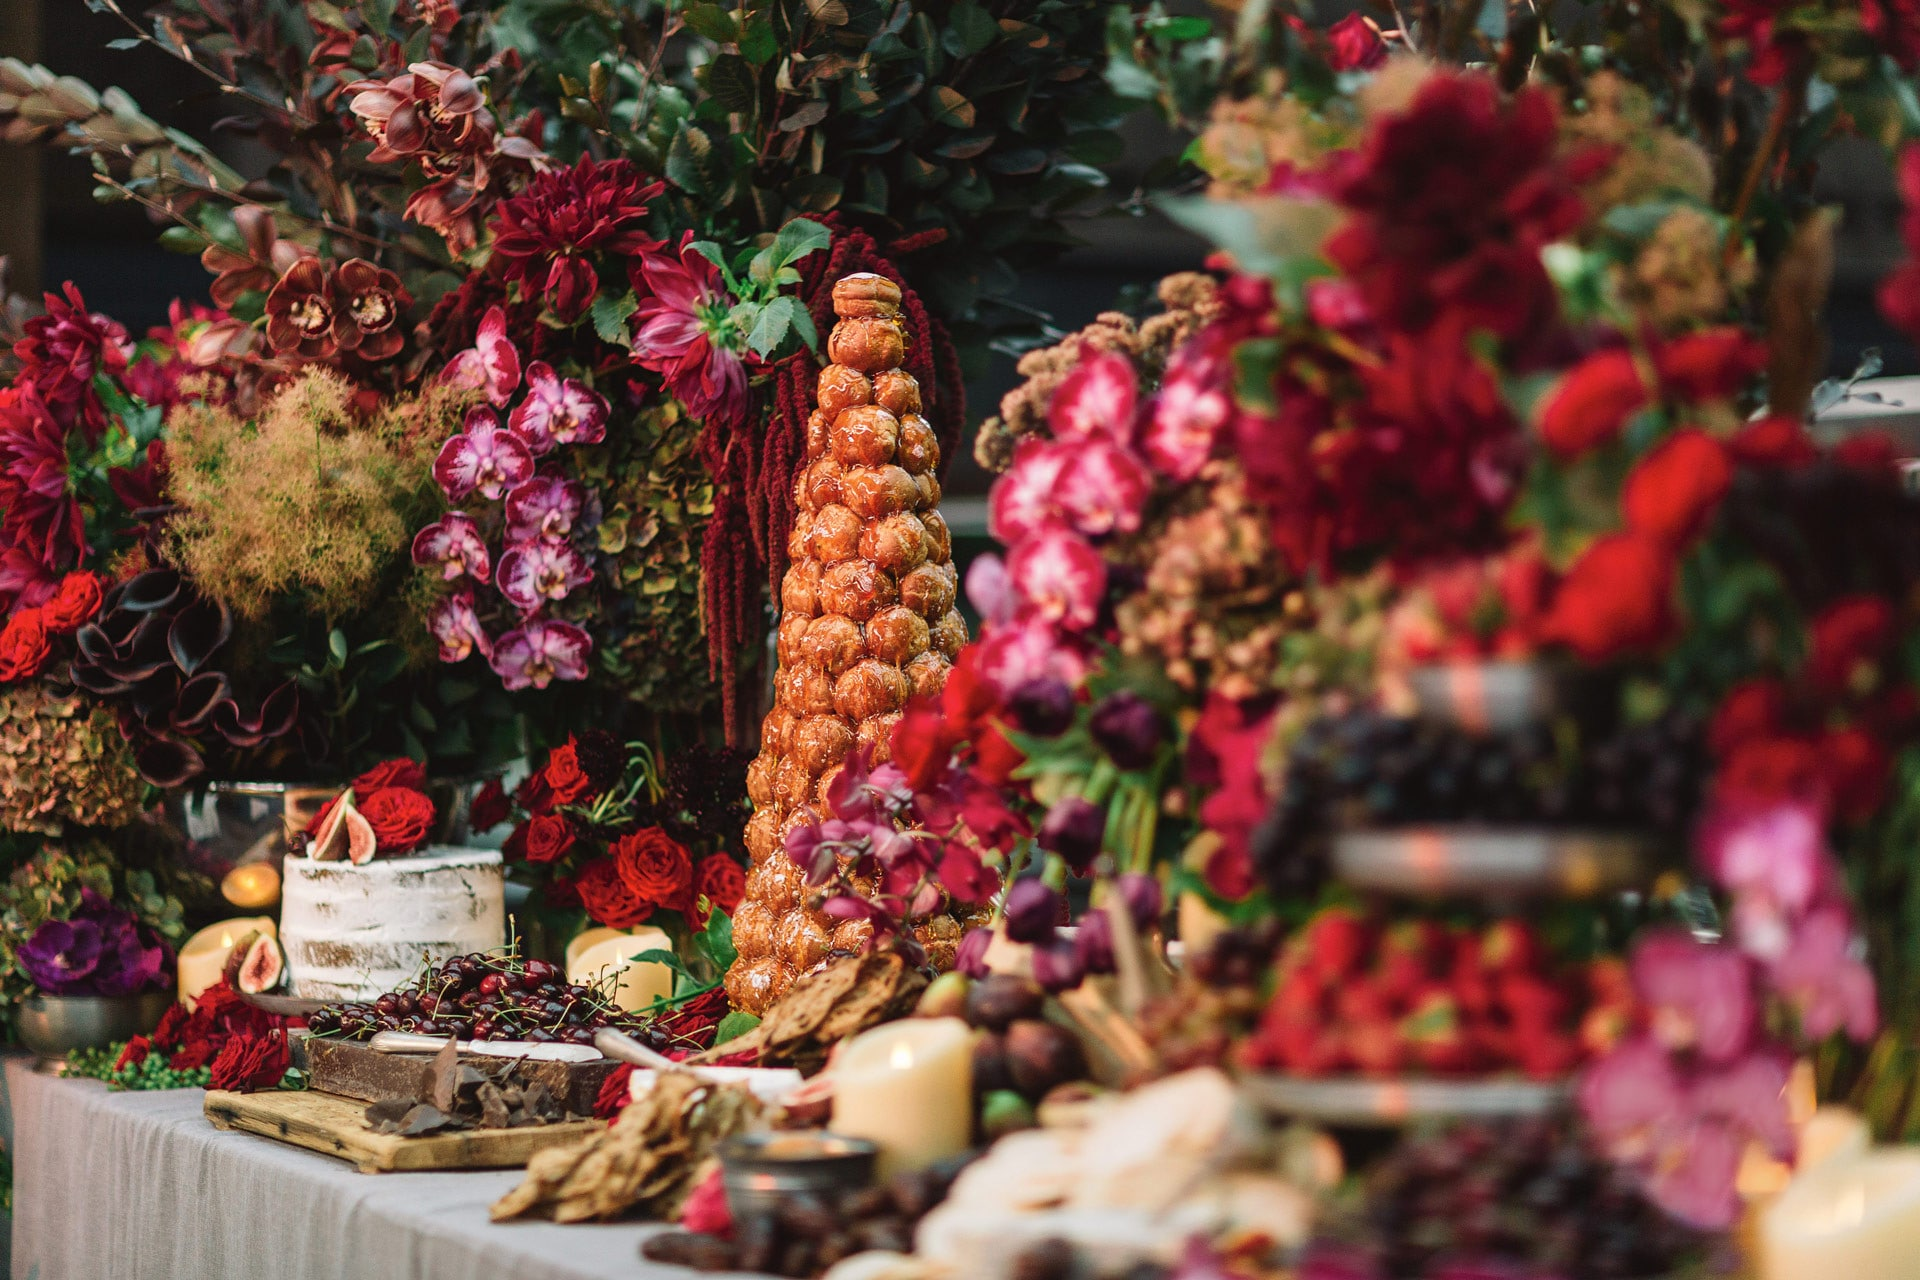 Food of love: how to decide on a wedding day menu every guest will love